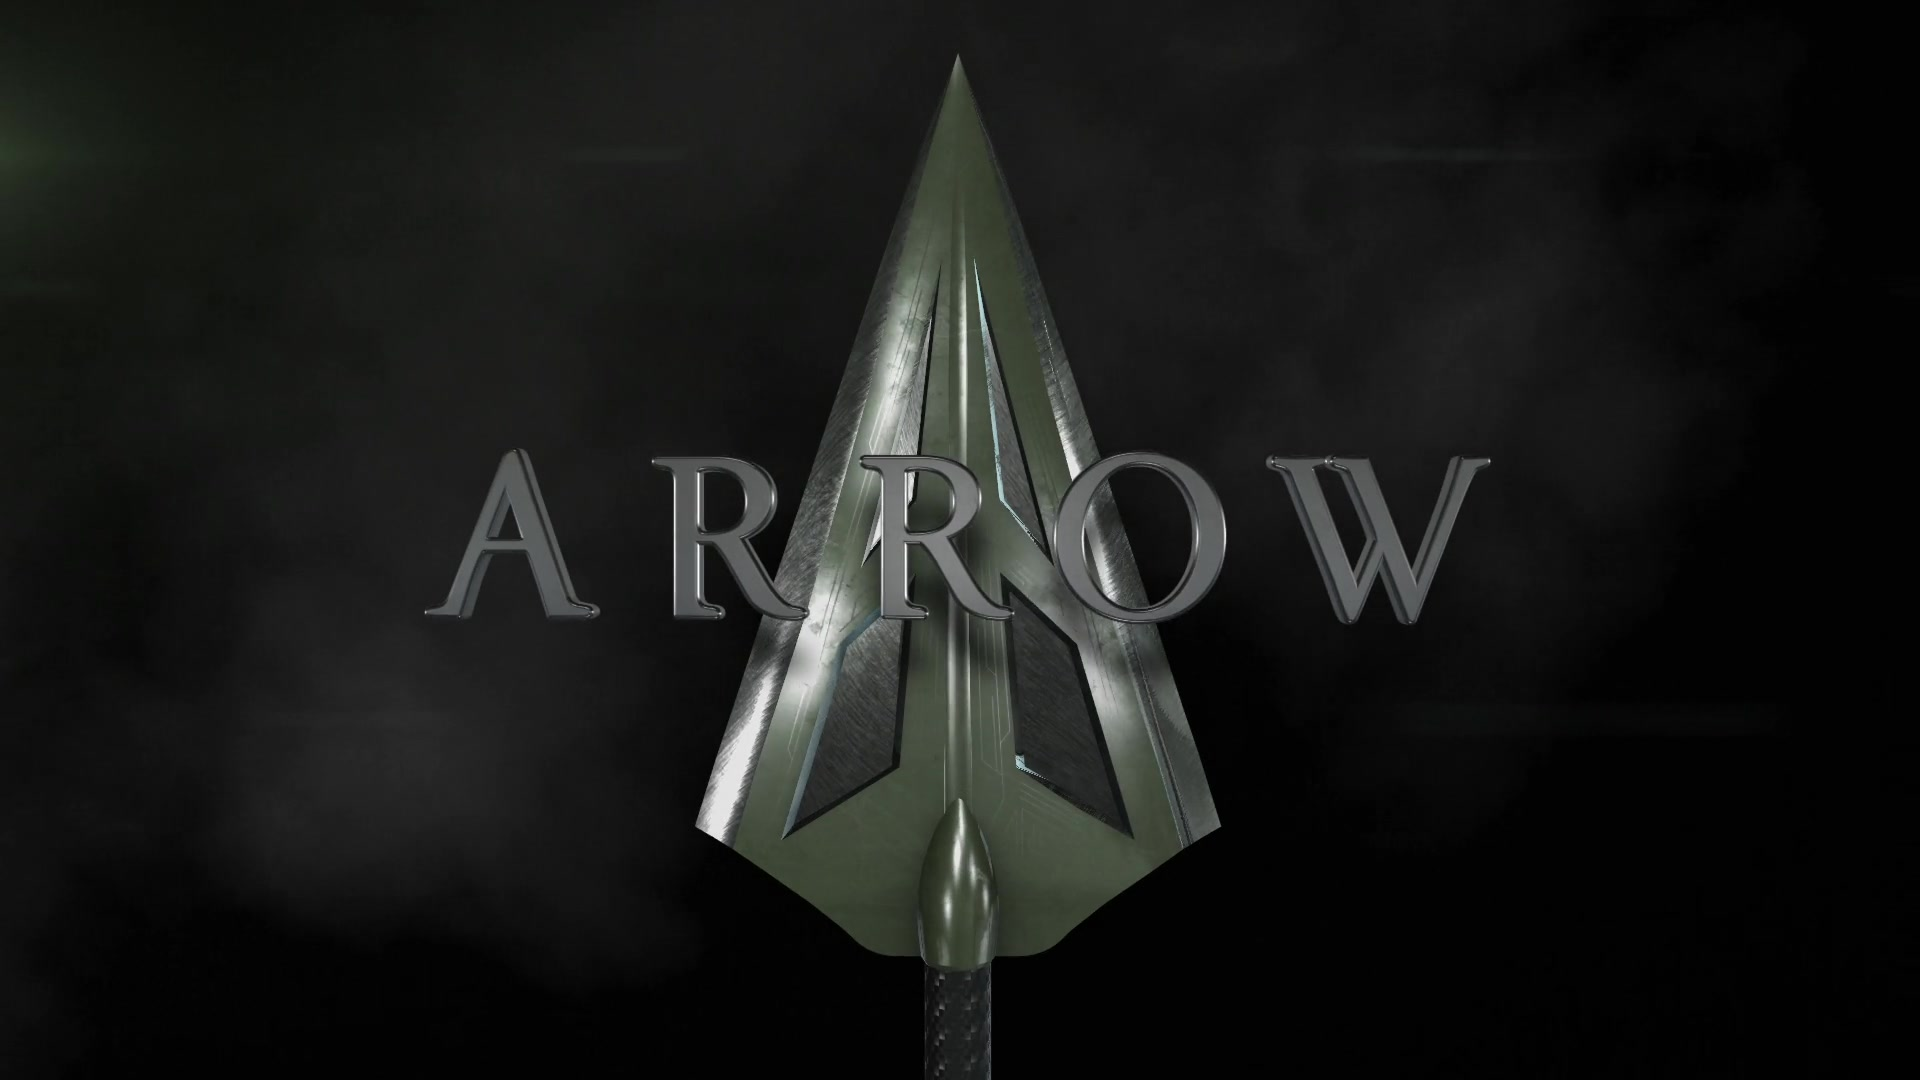 Arrow (TV Series) Episode: Star City 2040